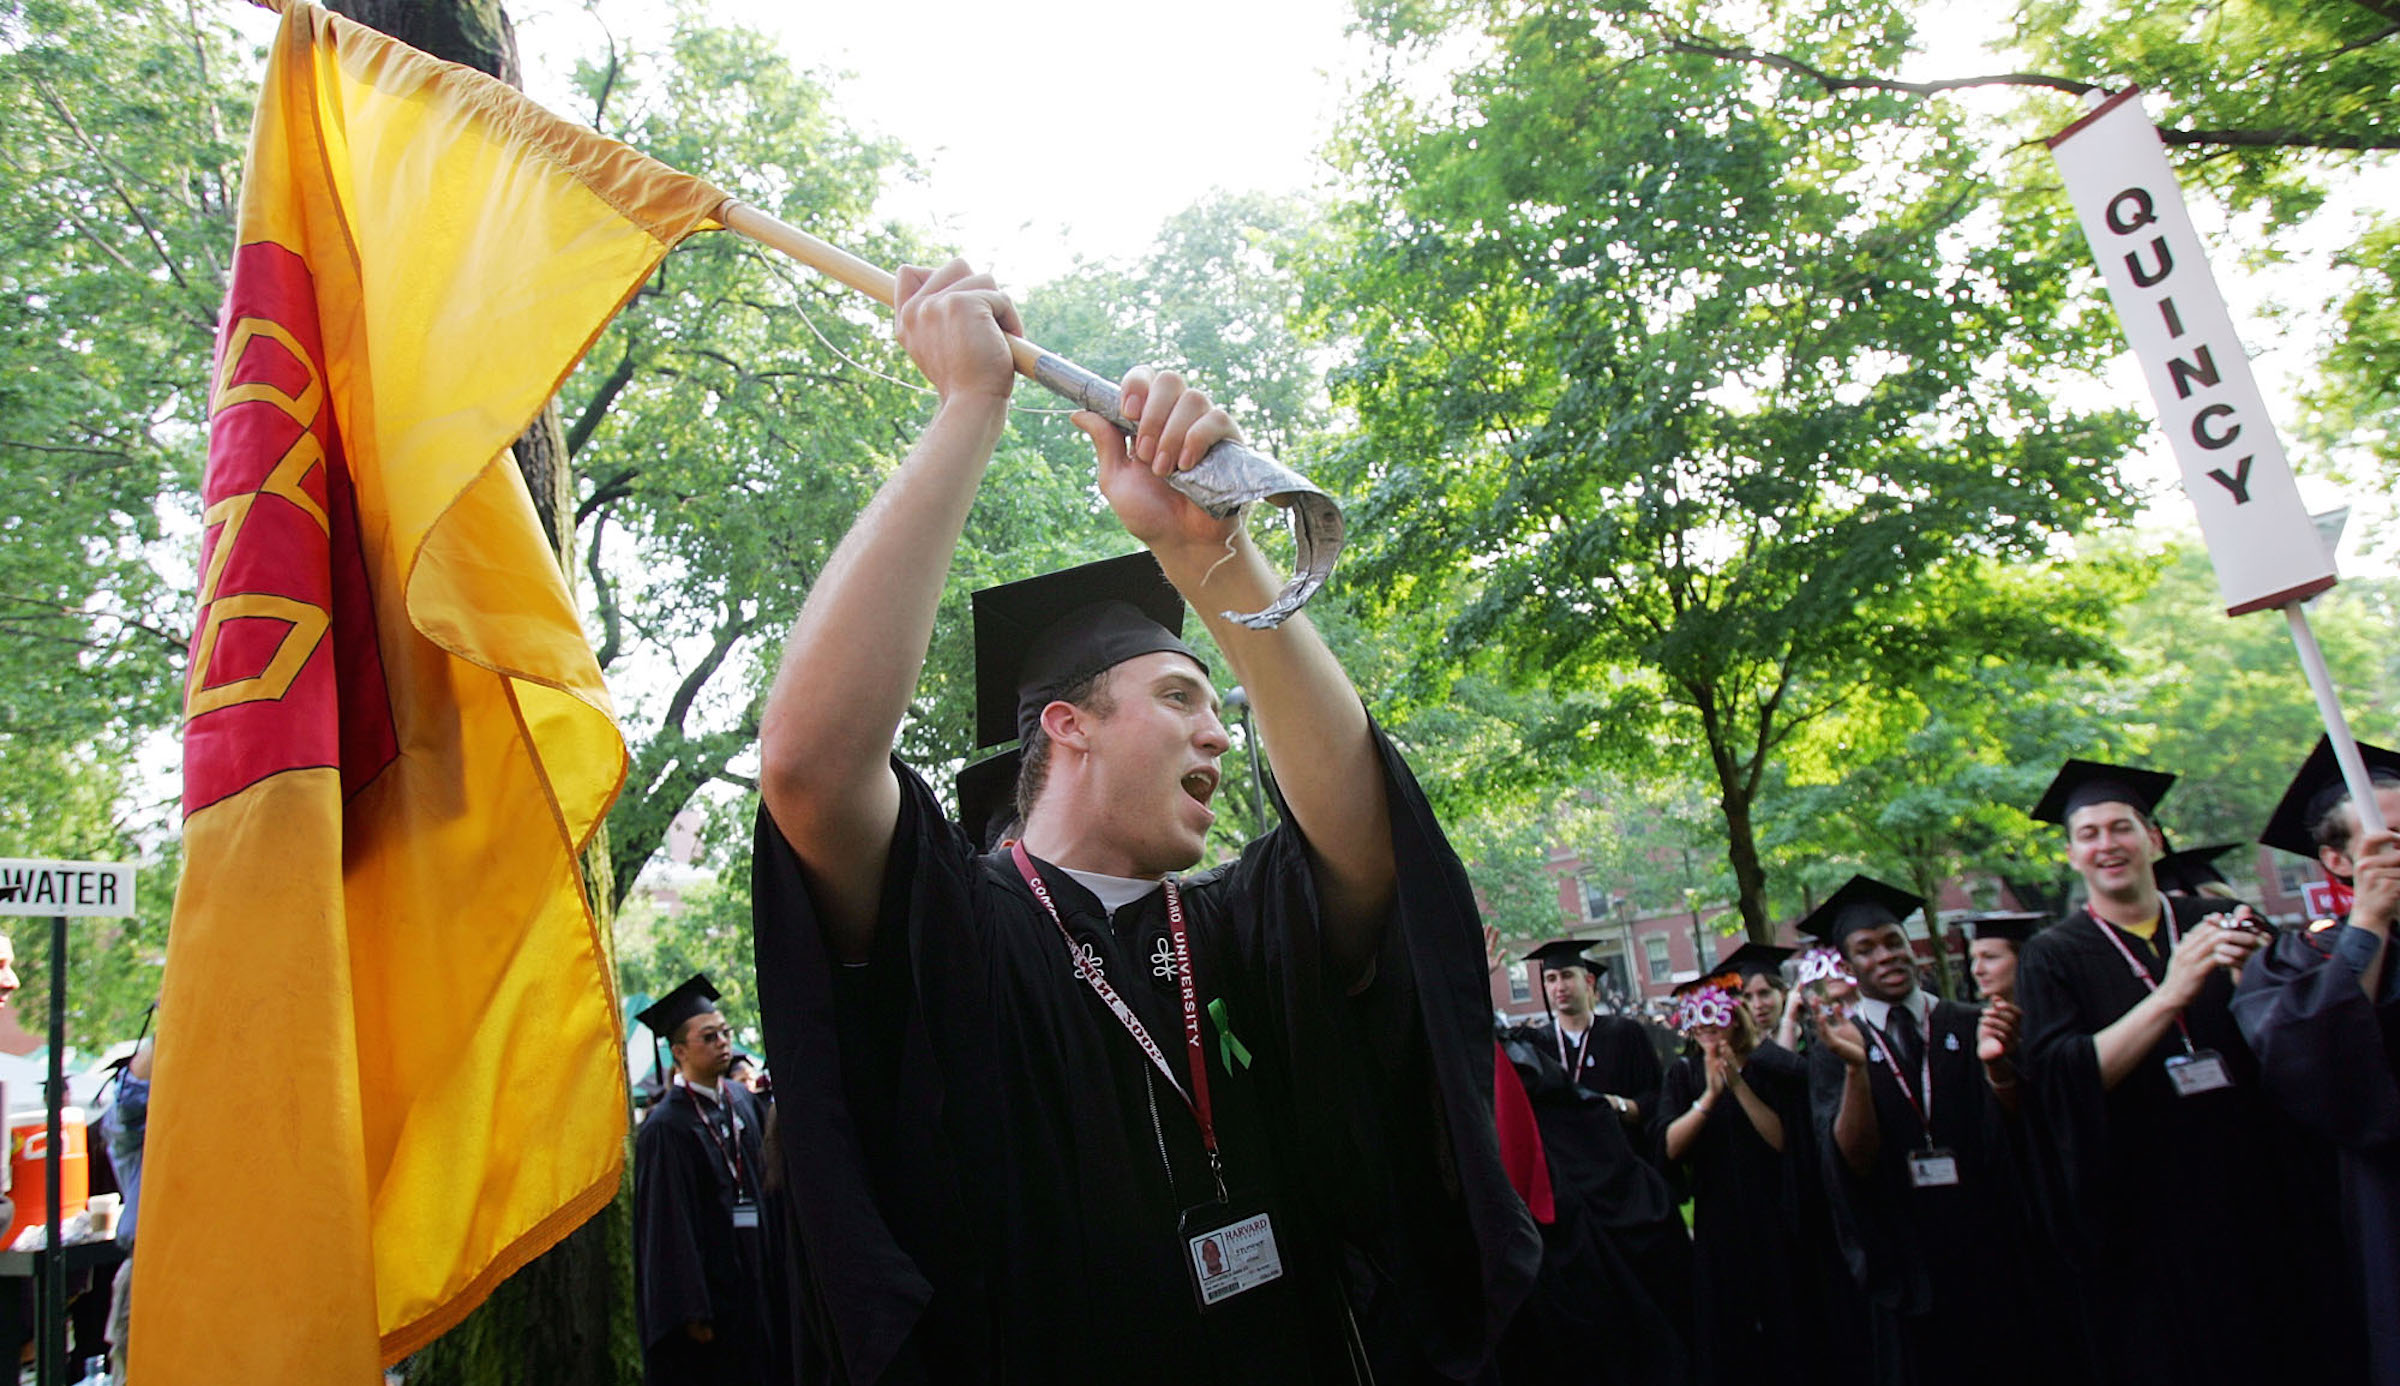 Elias Shibley, Harvard University class of 2005, flies a Quincy House flag when a procession of  Harvard's 354th commencement ceremonies began, Thursday, June 9, 2005, in Cambridge, Mass. (AP Photo/Chitose Suzuki)